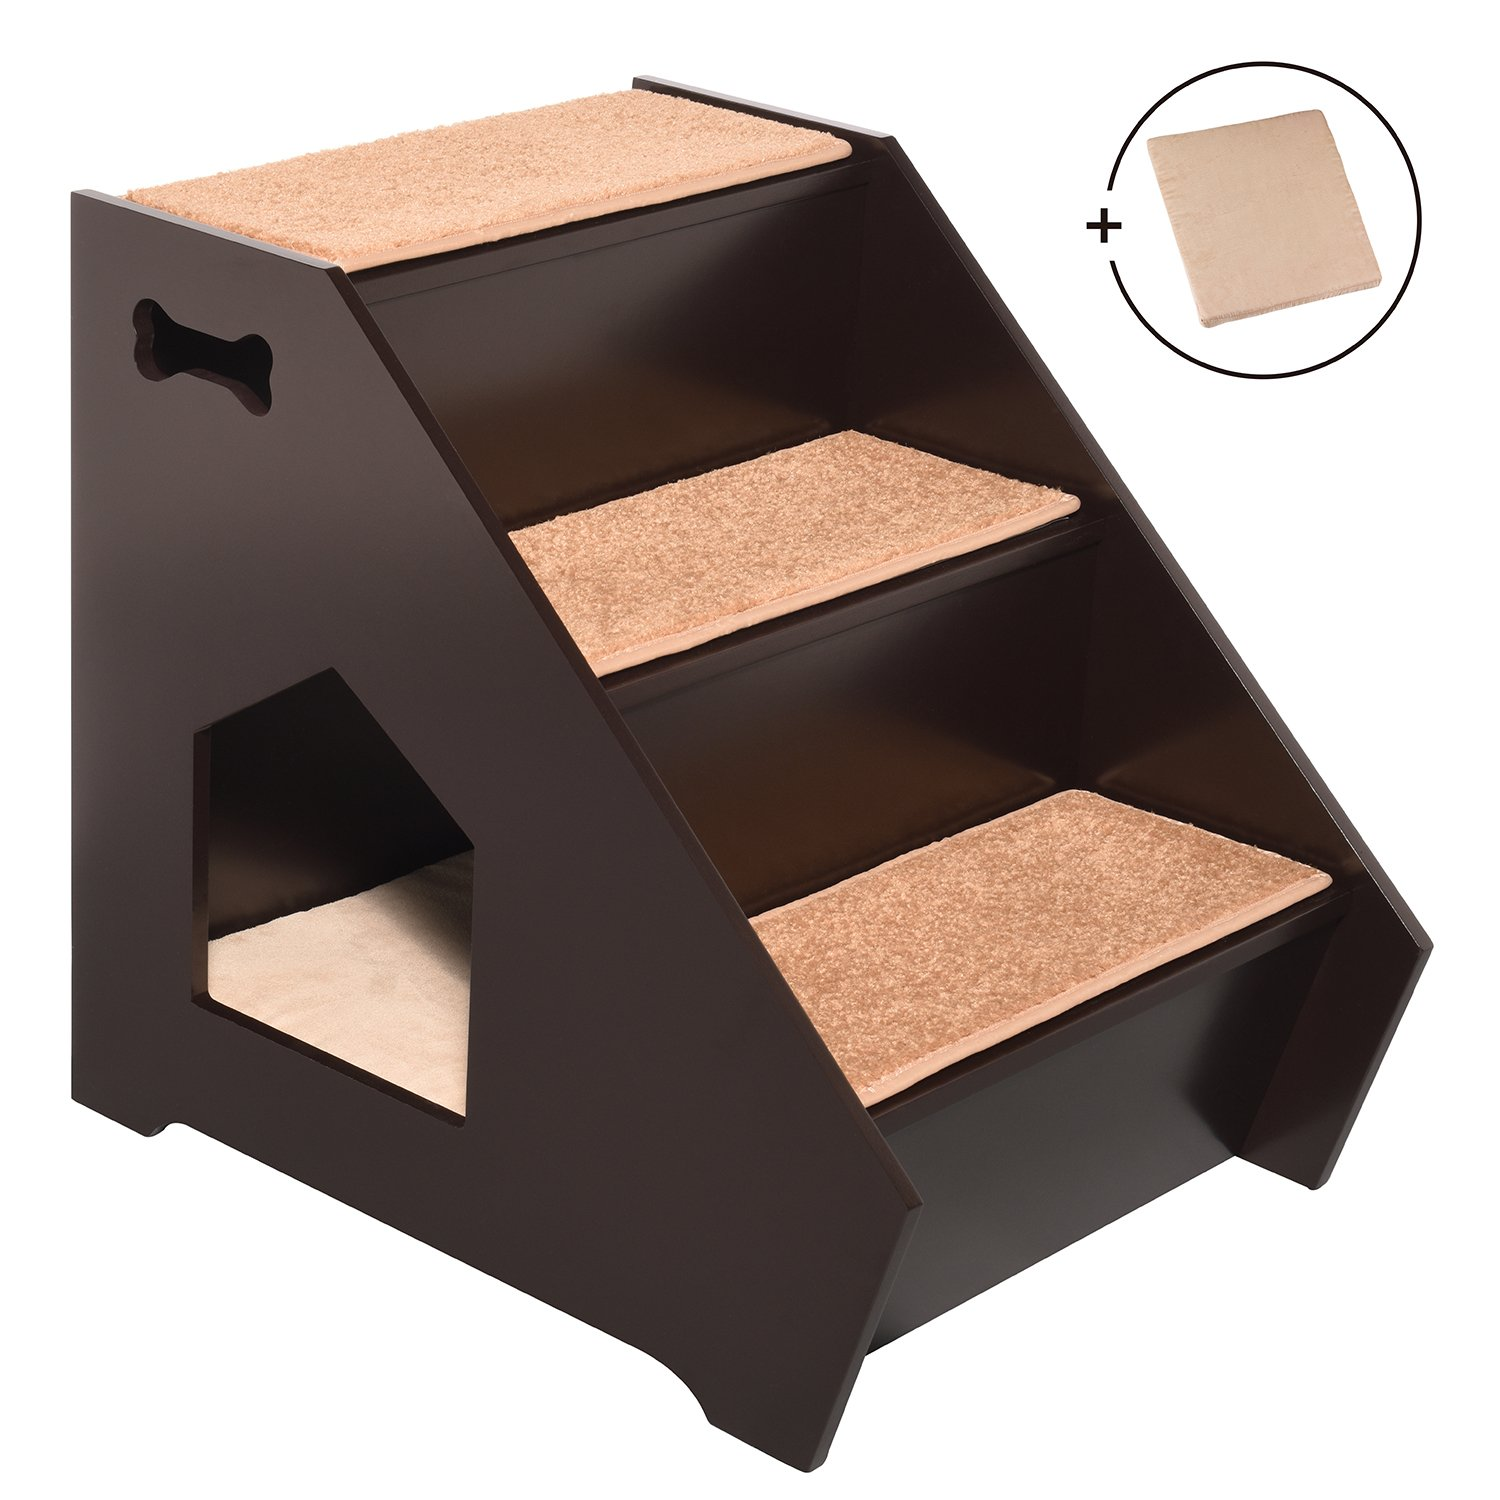 Arf Pets Cat Step House Wooden Pet Stairs w 3 Nonslip Steps, Built-in House for Dogs, Cats Short Pets to Reach Bed, Couch, Window, Car More Extra Bonus Cushion Included